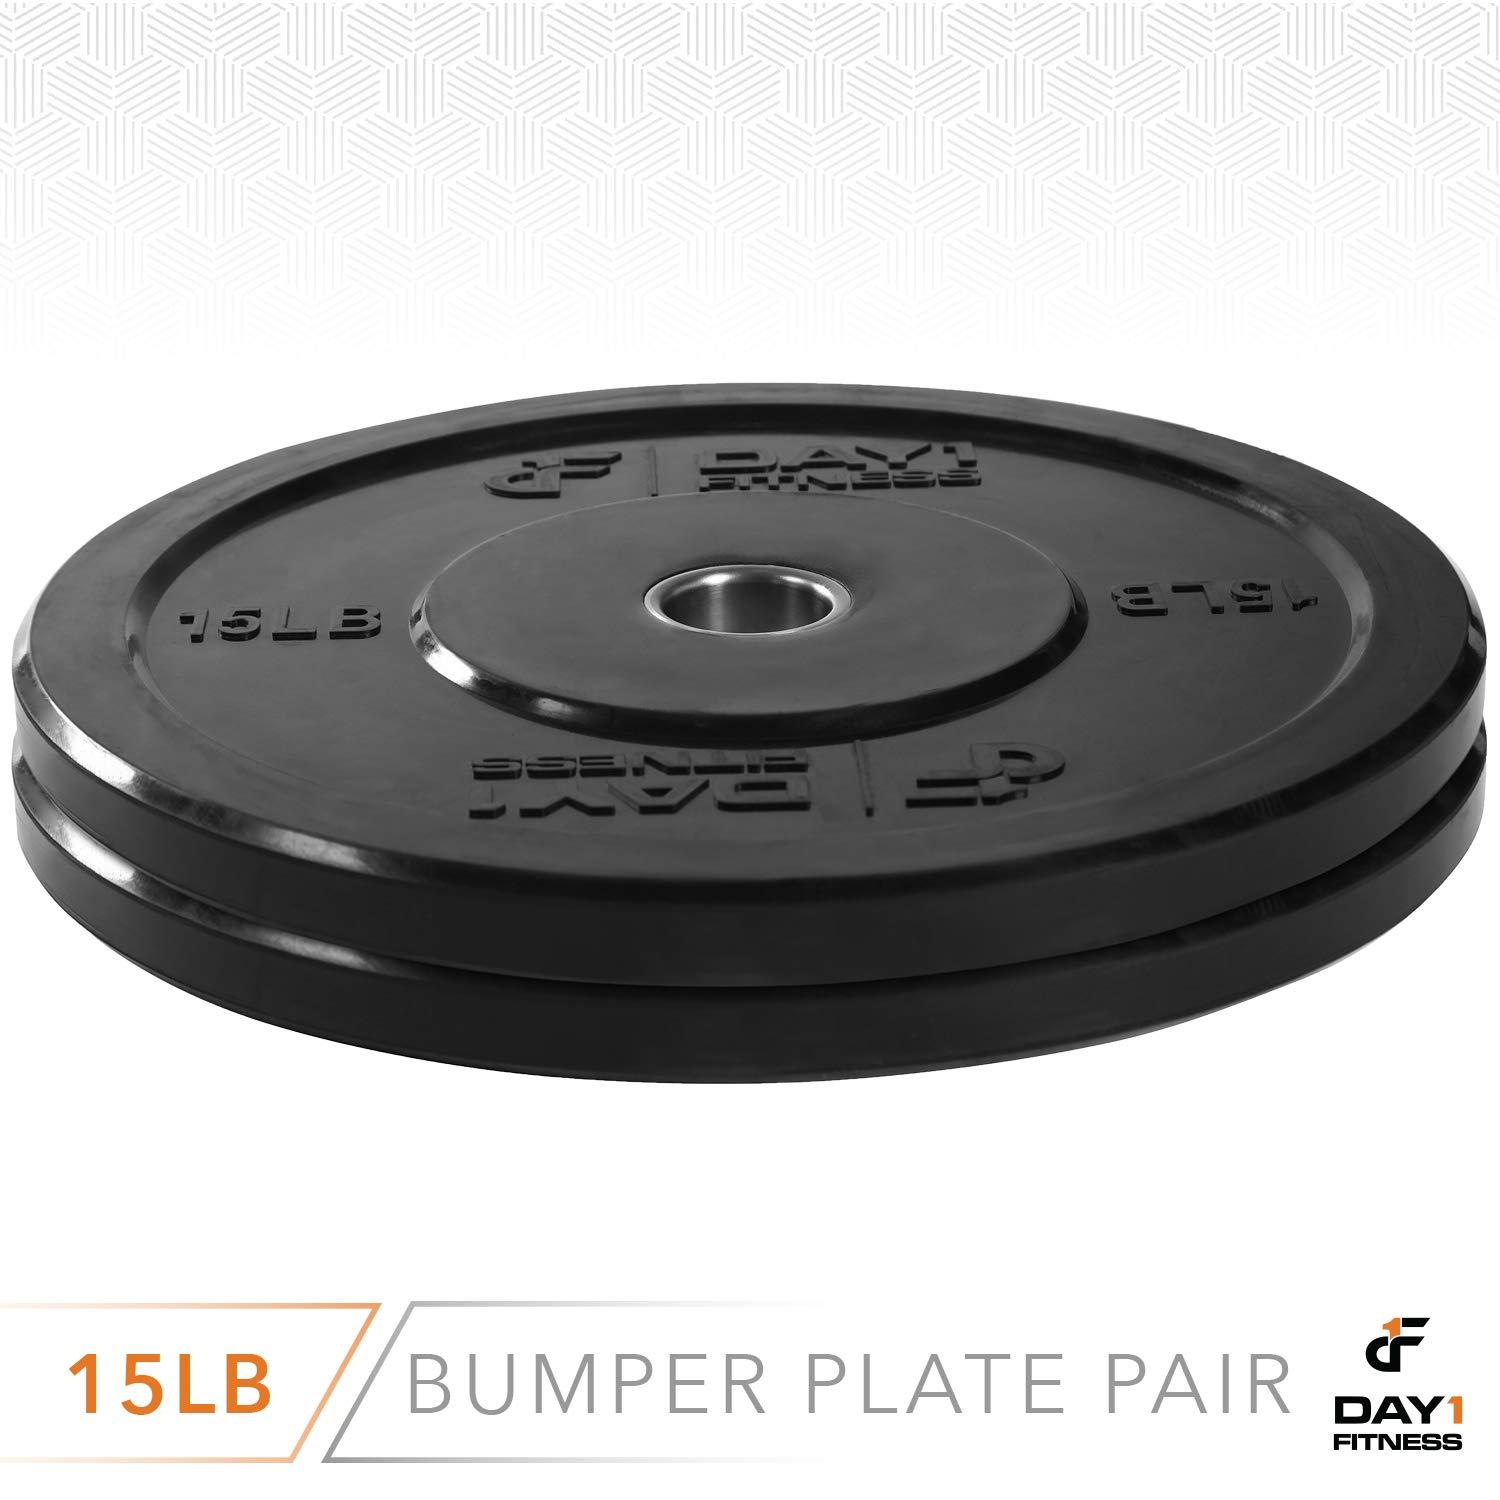 """Day 1 Fitness Olympic Bumper Weighted Plate 2"""" for Barbells, Bars – 15 lb Set of 2 Plates - Shock-Absorbing, Minimal Bounce Steel Weights with Bumpers for Lifting, Strength Training, and Working Out by Day 1 Fitness (Image #3)"""